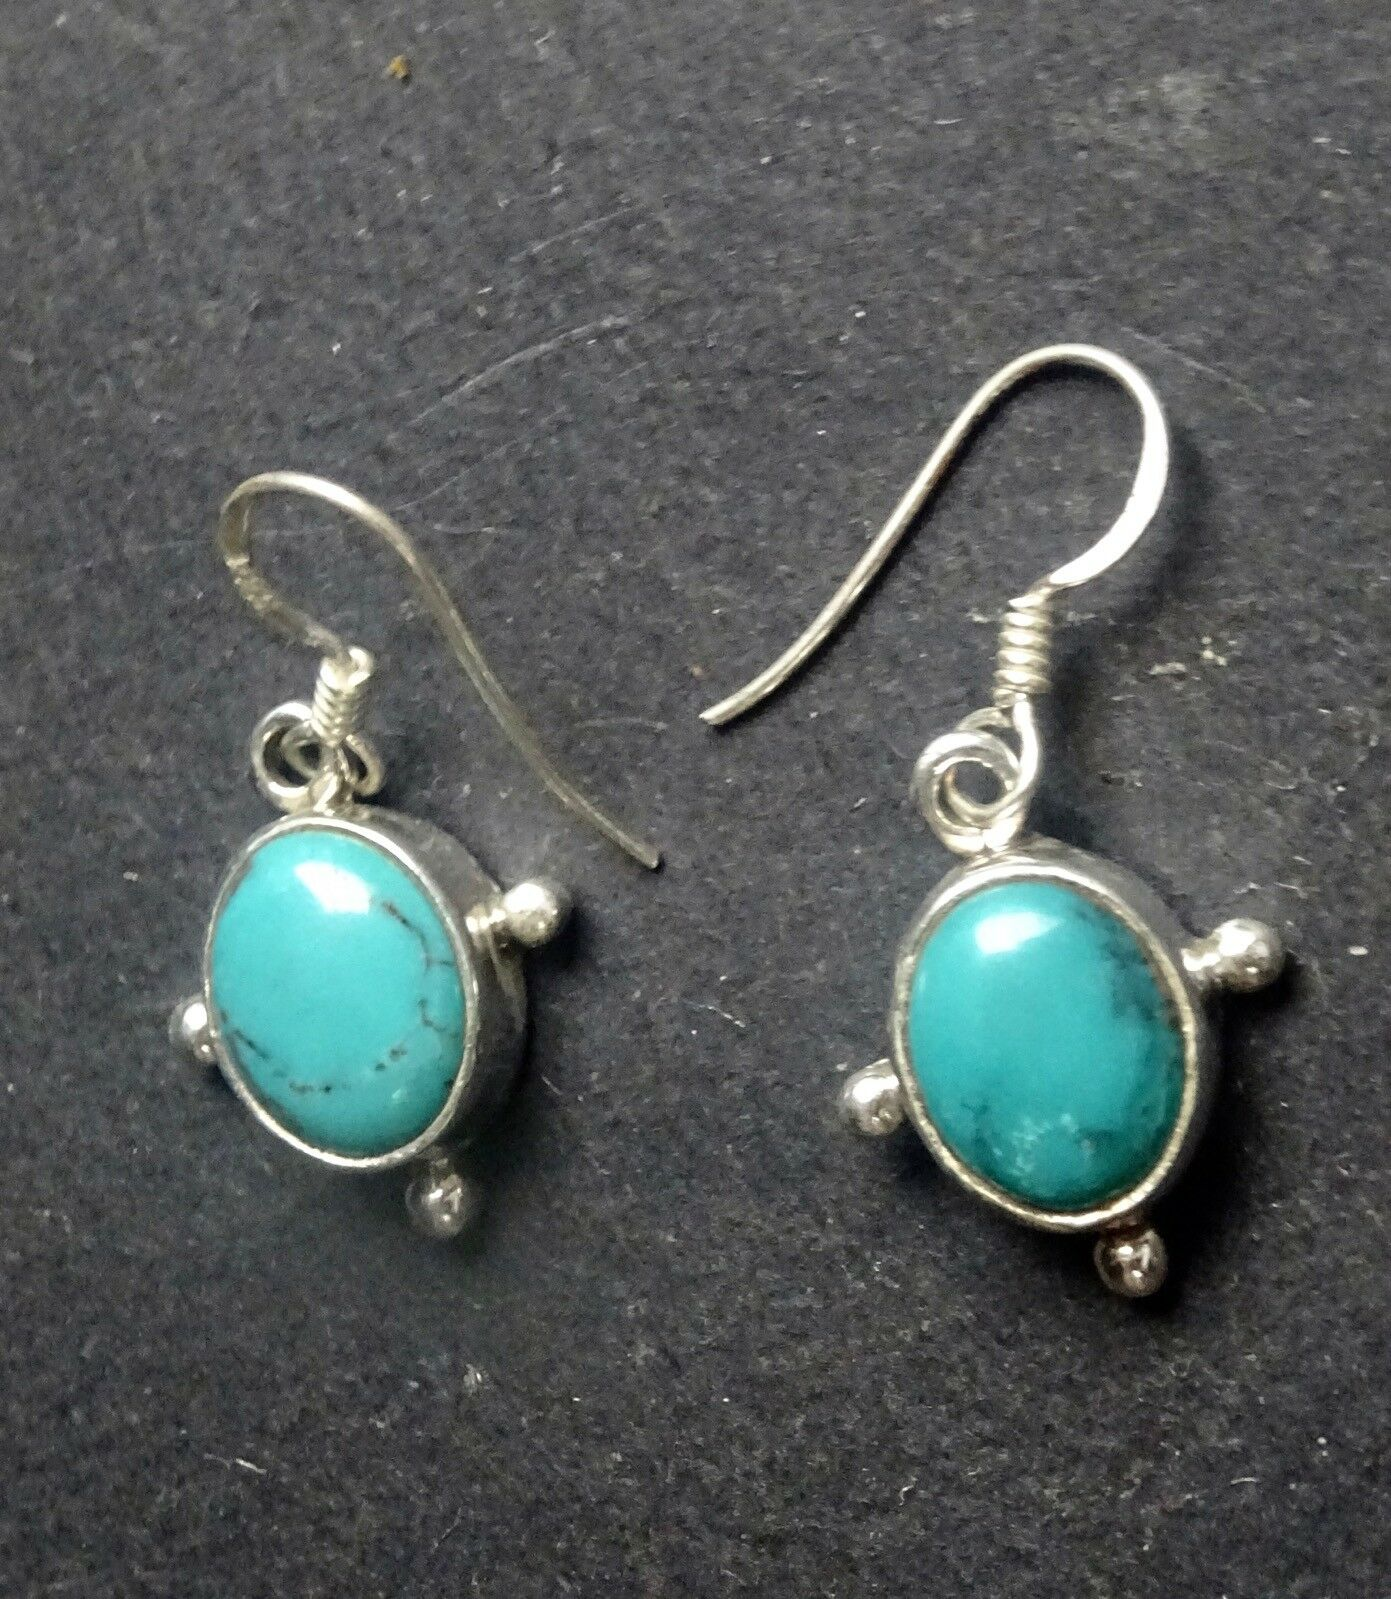 PAIRE BOUCLE D'OREILLE INDE TURQUOISE EARING INDIA